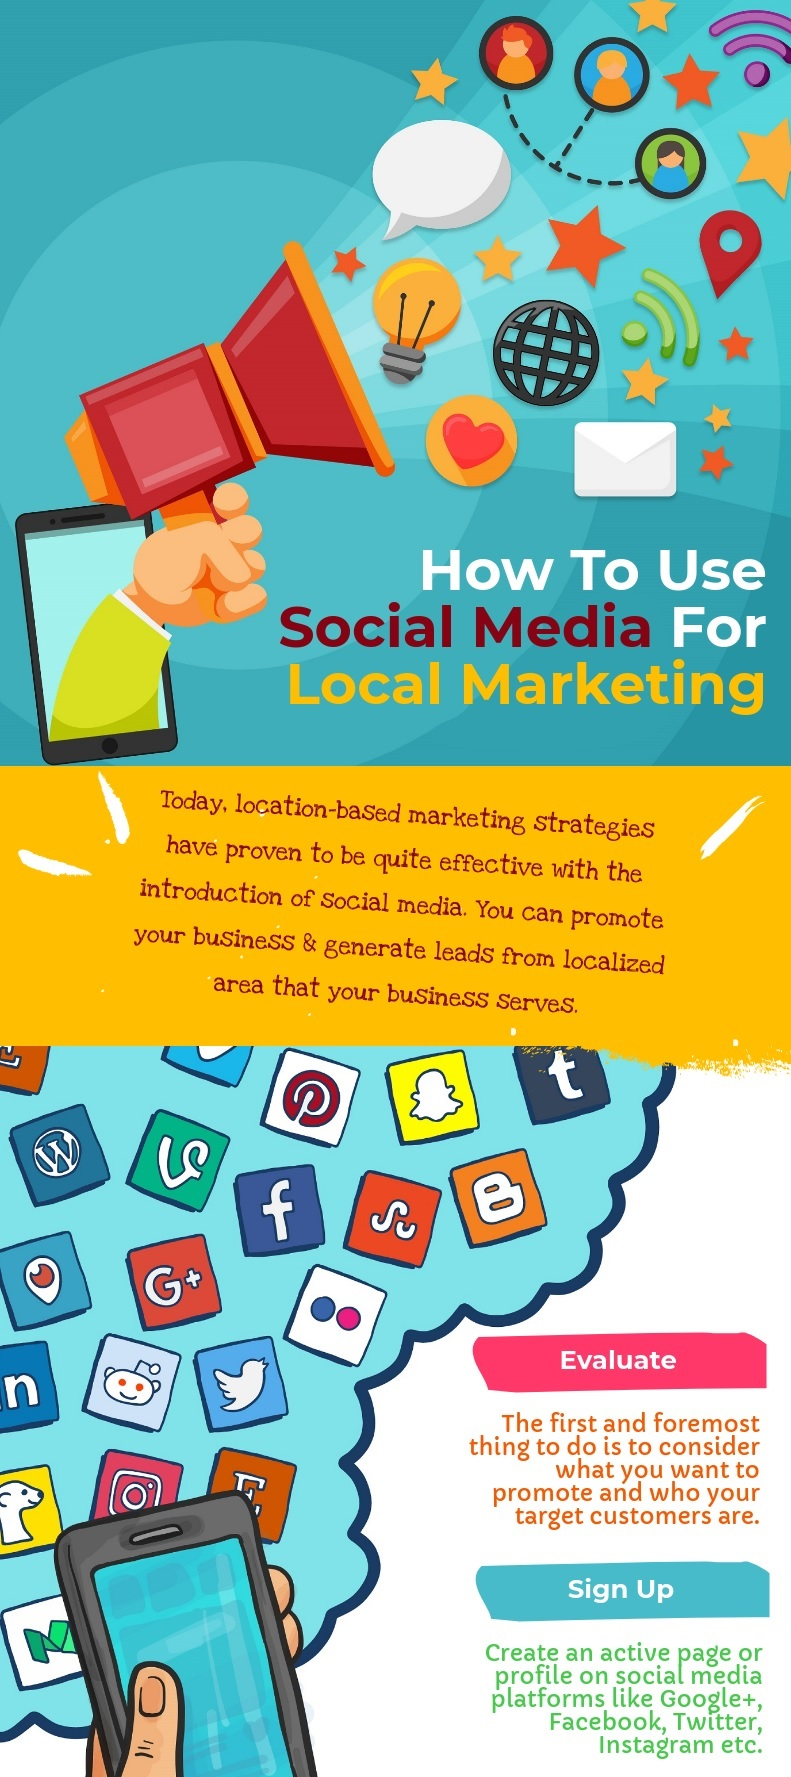 How-To-Use-Social-Media-For-Local-Marketing